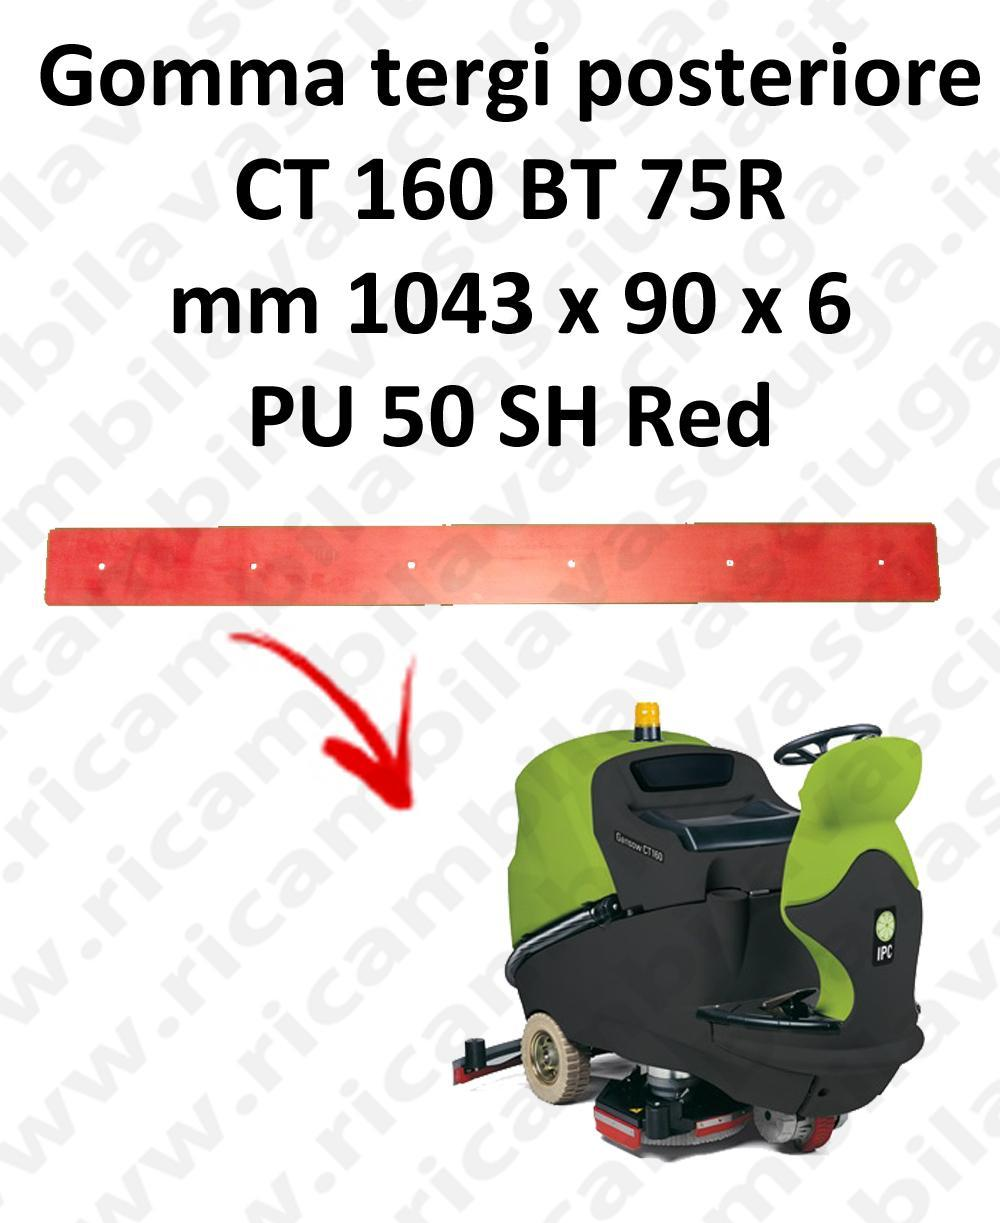 CT 160 BT 75R Back Squeegee rubber for squeegee IPC